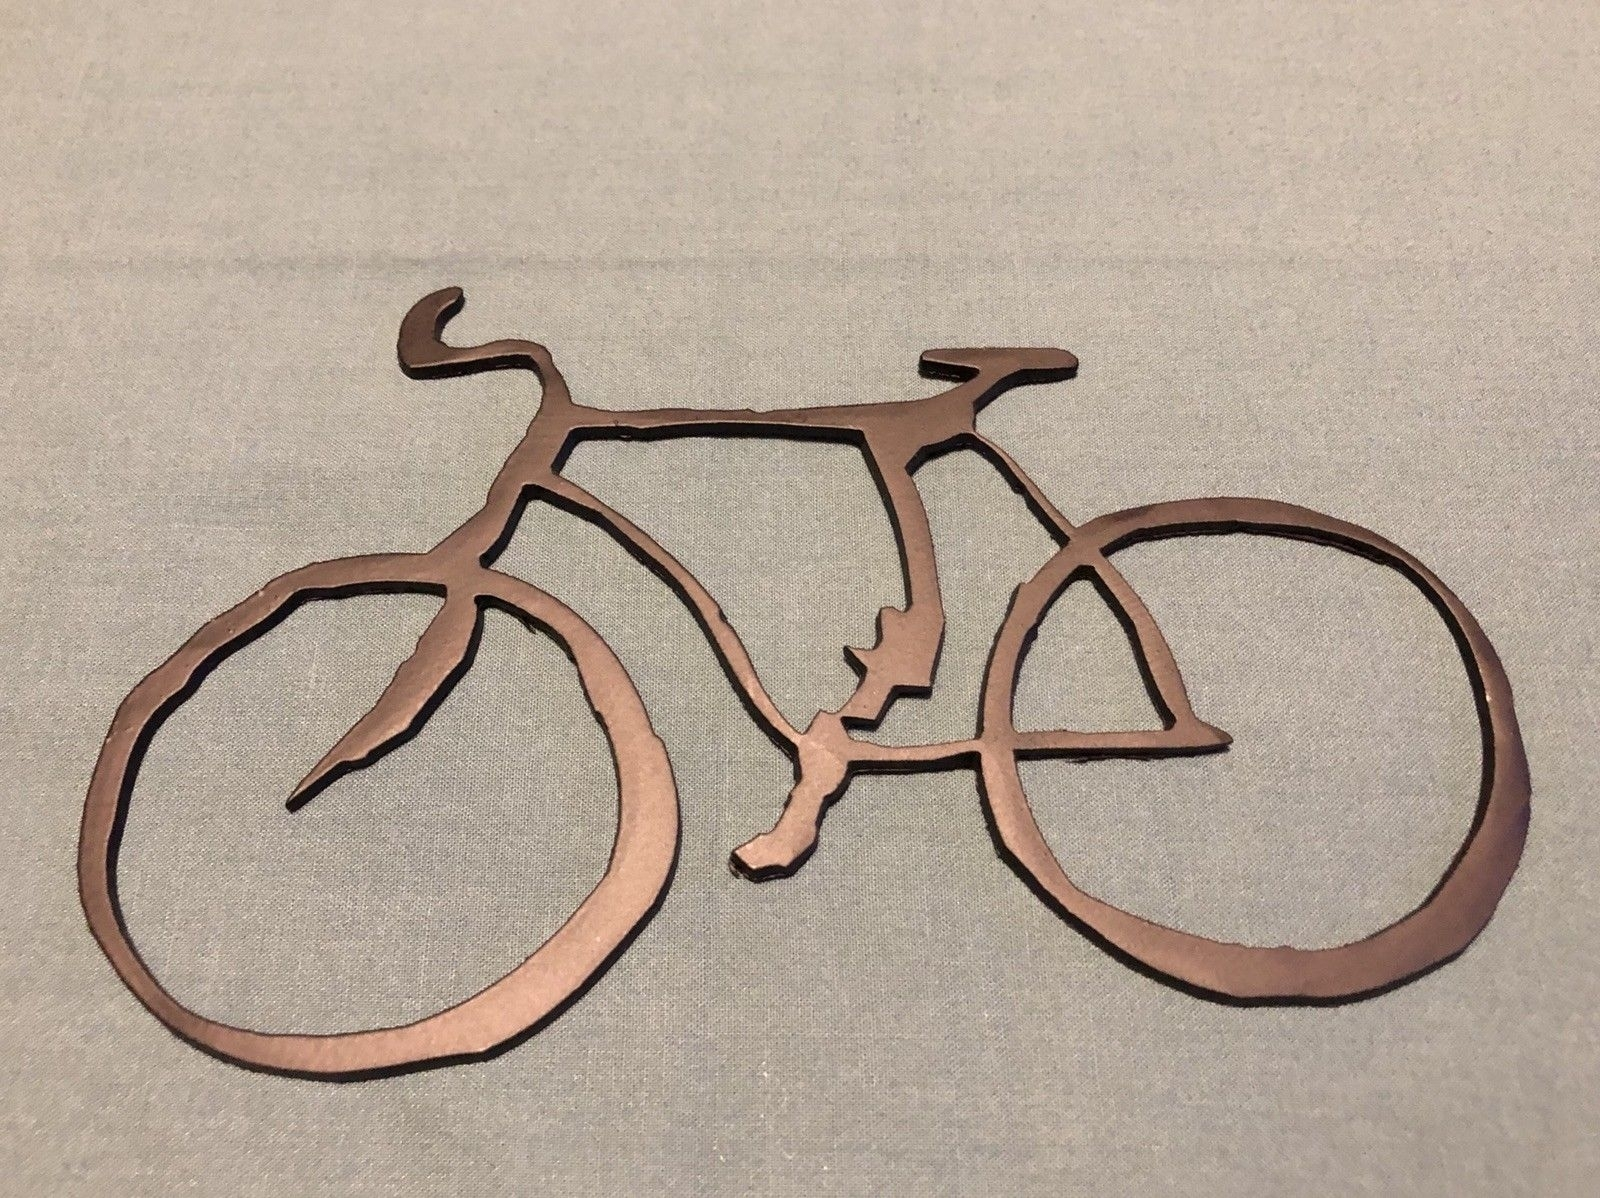 Bicycle Metal Wall Art Home Decor – $5.40 | Picclick Within Newest Bicycle Wall Art (Gallery 13 of 20)